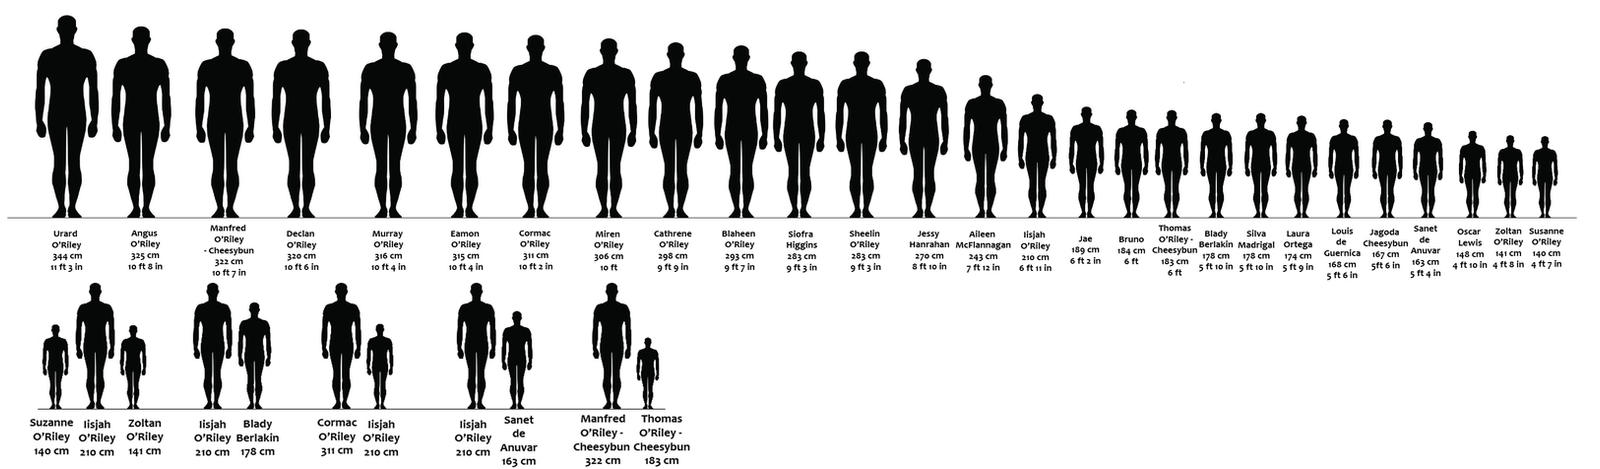 OC height chart and comparison by iisjah on DeviantArt